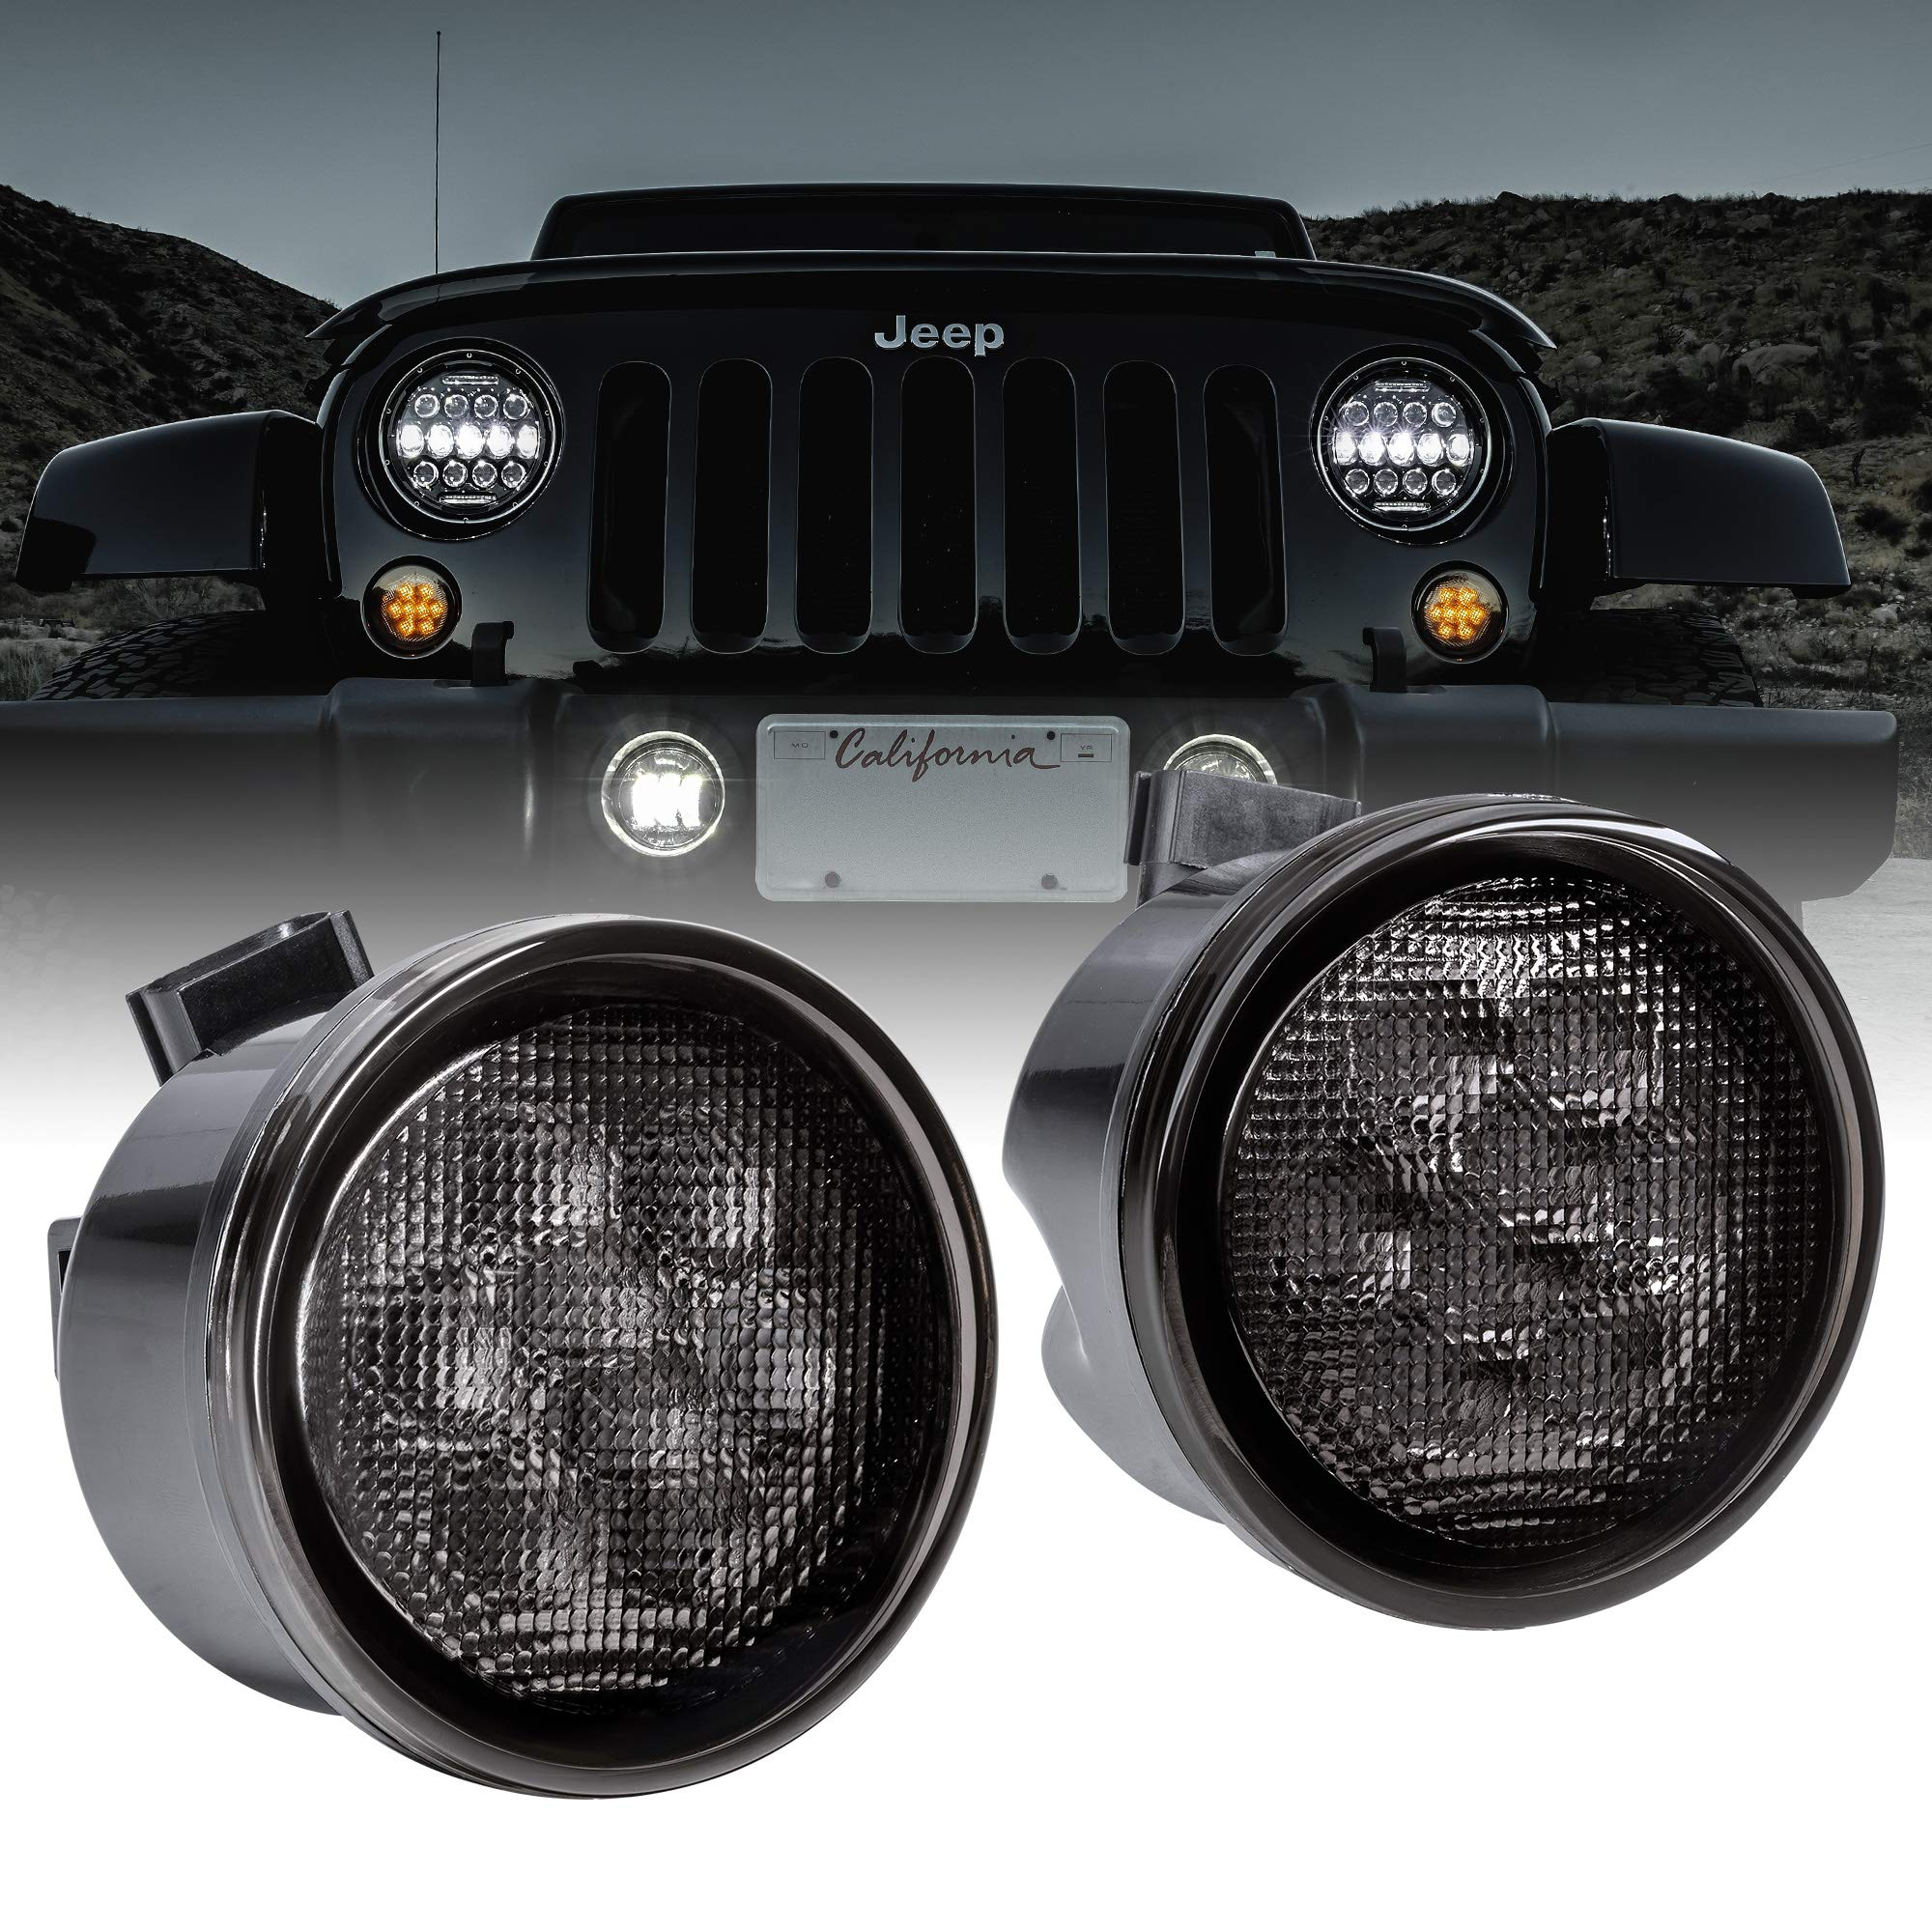 LED Turn Signal Lights Replacement for Jeep [Smoked Lens] [Amber Color] [DRL] Turn signal Running Lights Compatible with Jeep Wrangler JK Unlimited 2007-2018 Accessories